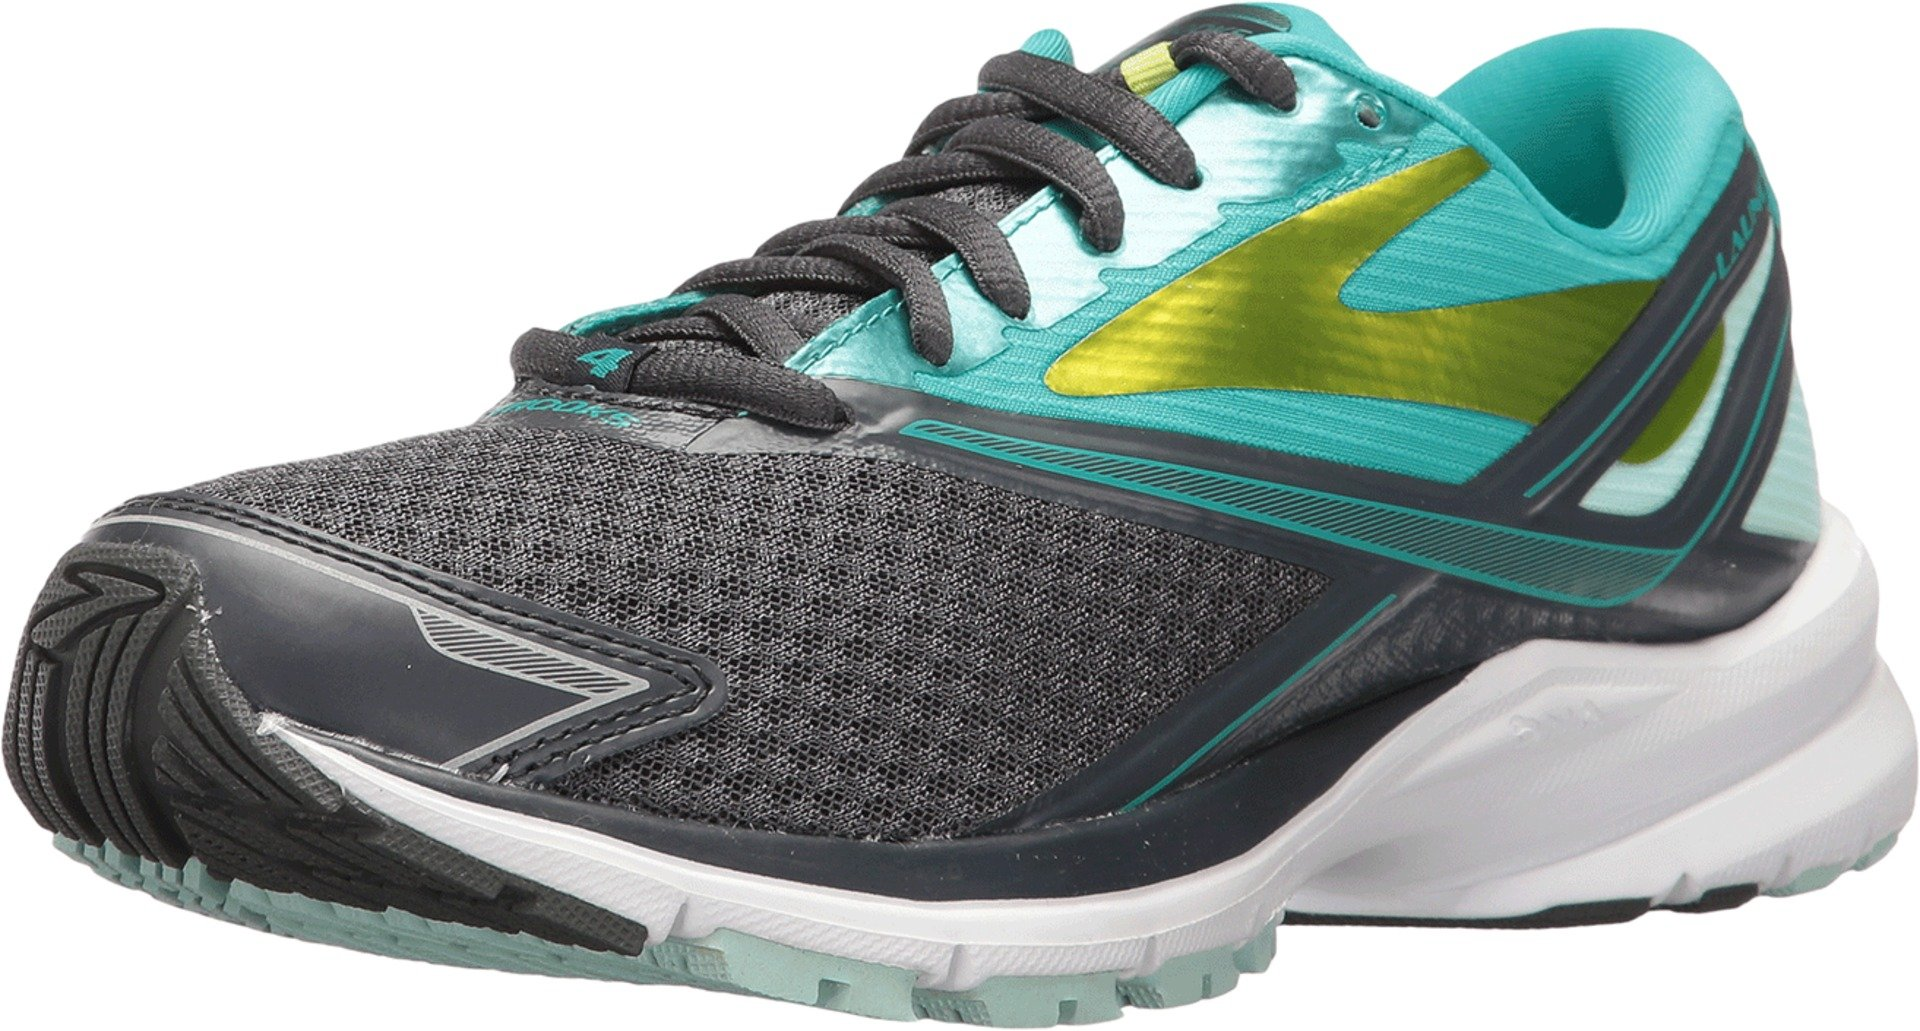 Brooks Womens Launch 4 Running Sneaker Shoe, Anthracite/Ceramic/Lime Punch, 10 by Brooks